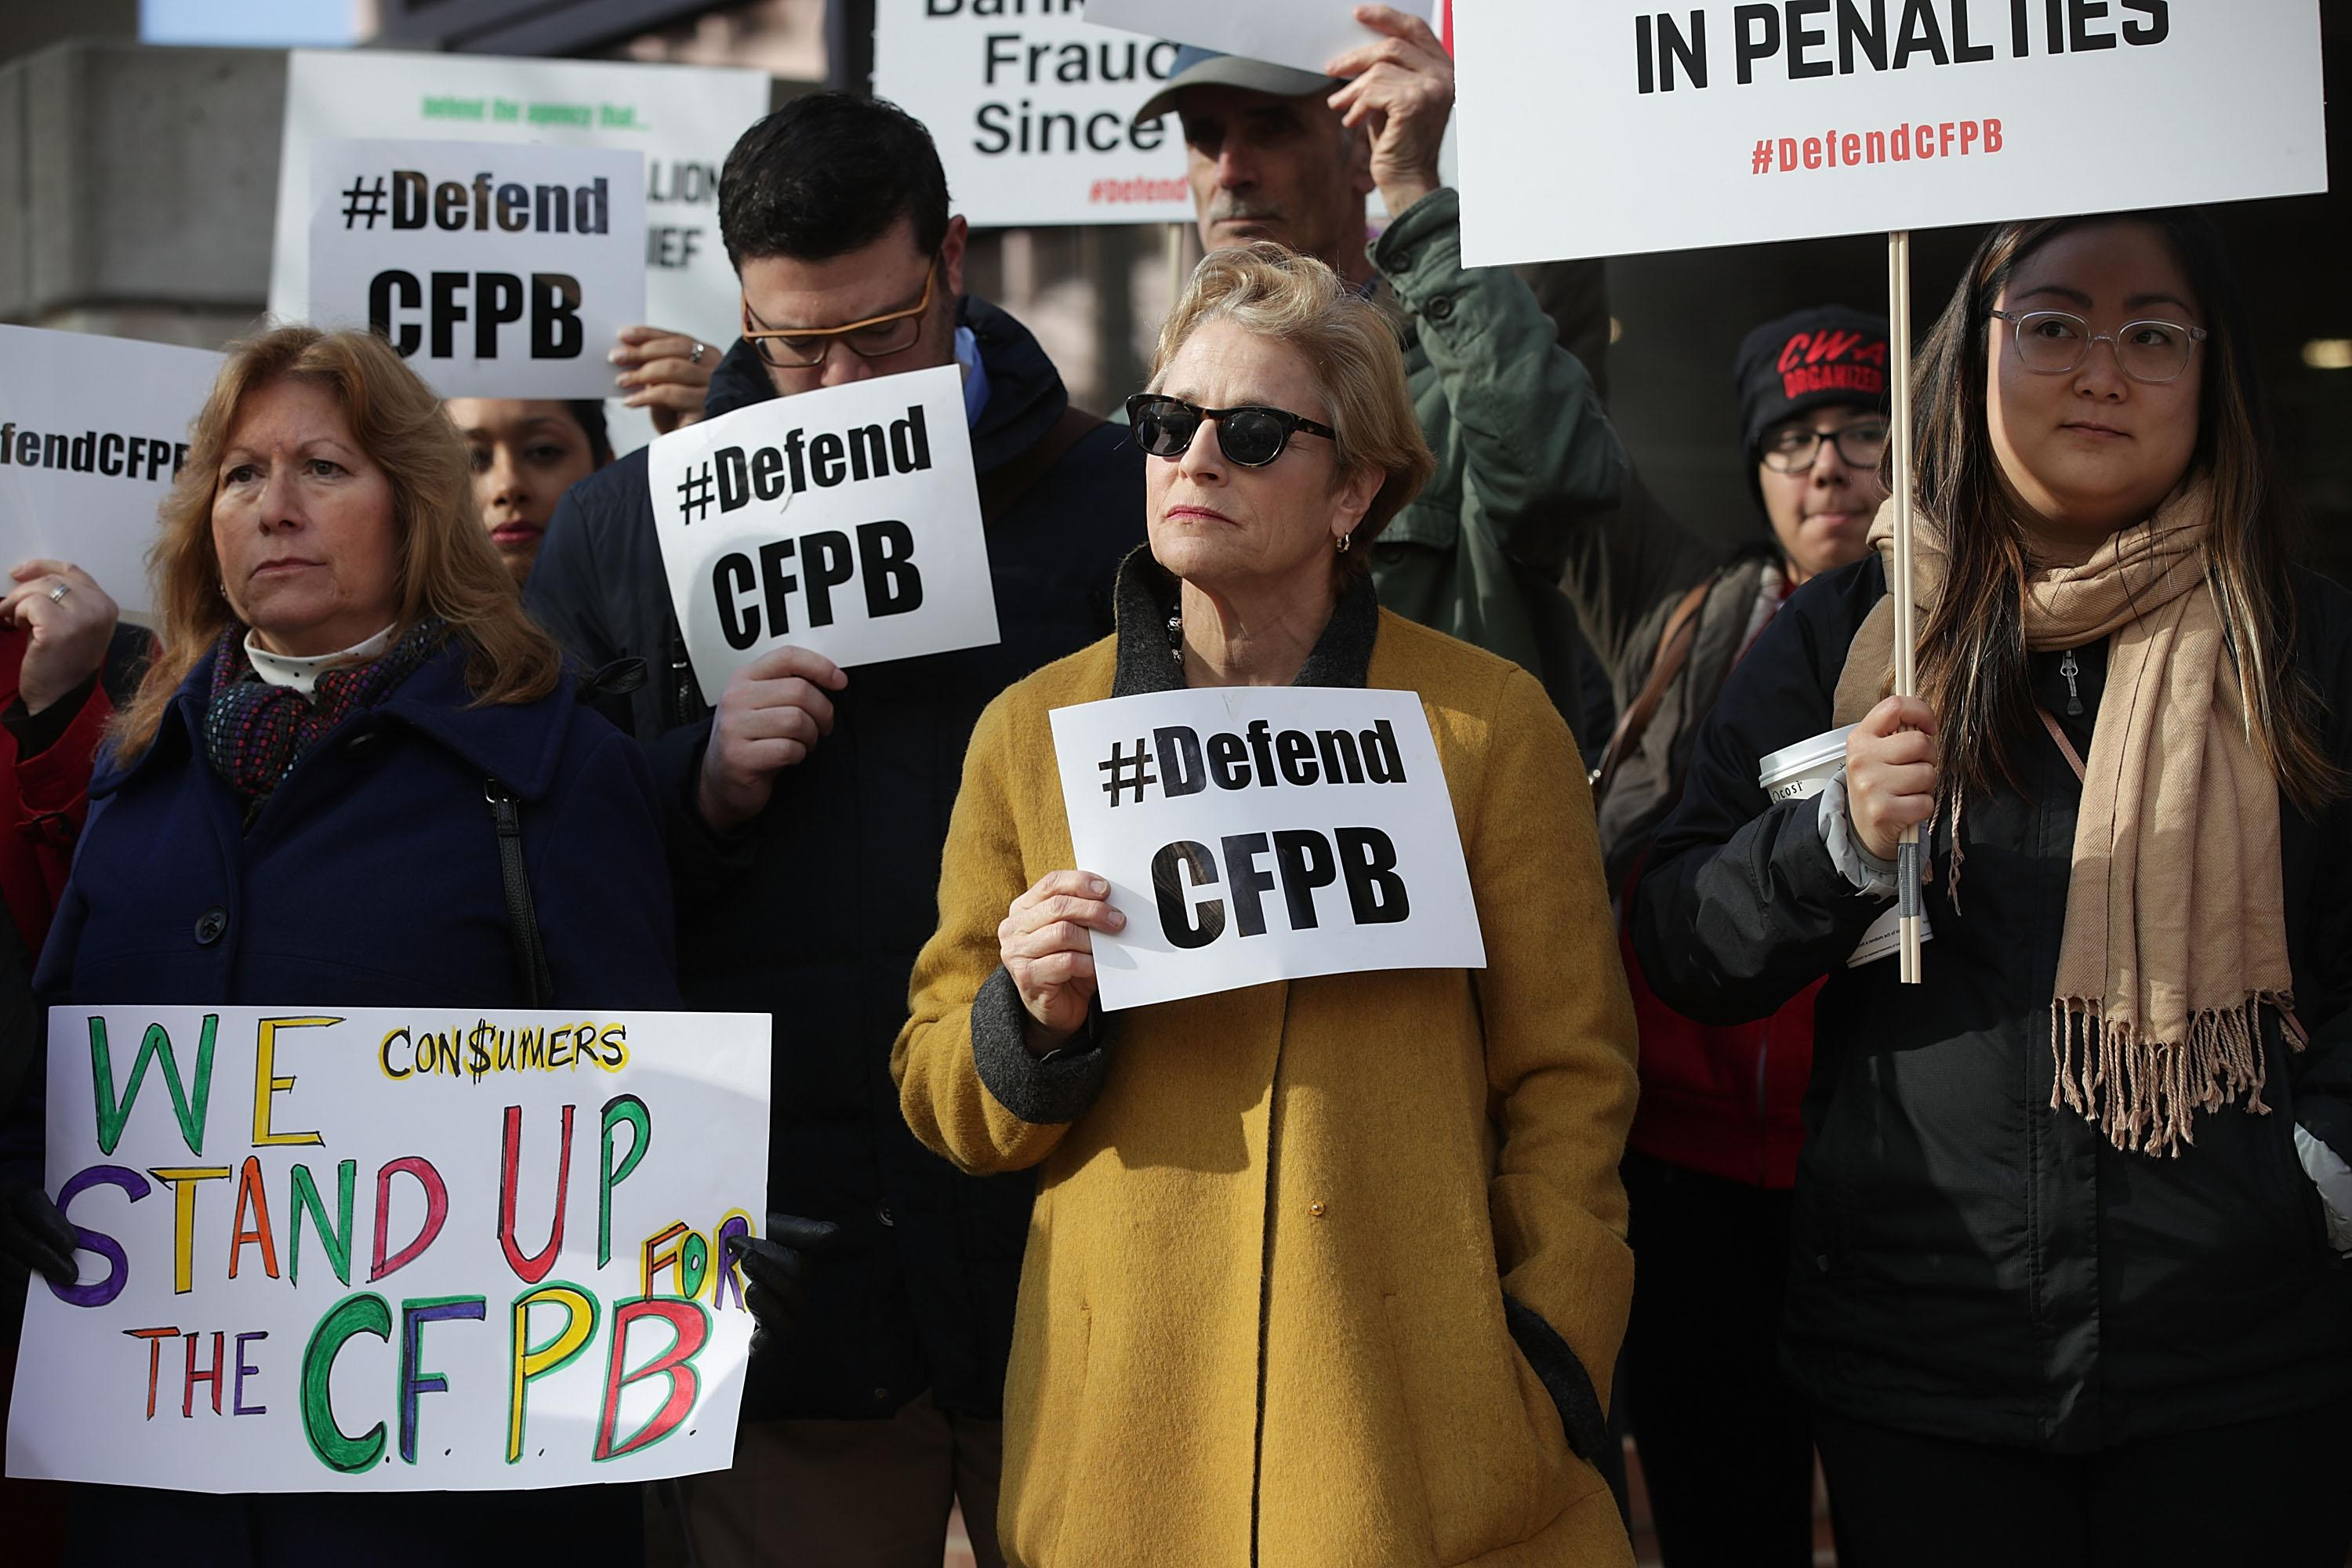 WASHINGTON, DC - NOVEMBER 27:   Supporters of the Consumer Financial Protection Bureau hold signs as they gather in front of the agency November 27, 2017 in Washington, DC. President Trump has picked White House Budget Director Mick Mulvaney as the acting director after former director Richard Cordray stepped down and named his chief of staff Leandra English as acting director, setting up a possible court battle over who will lead the agency.  (Photo by Alex Wong/Getty Images)